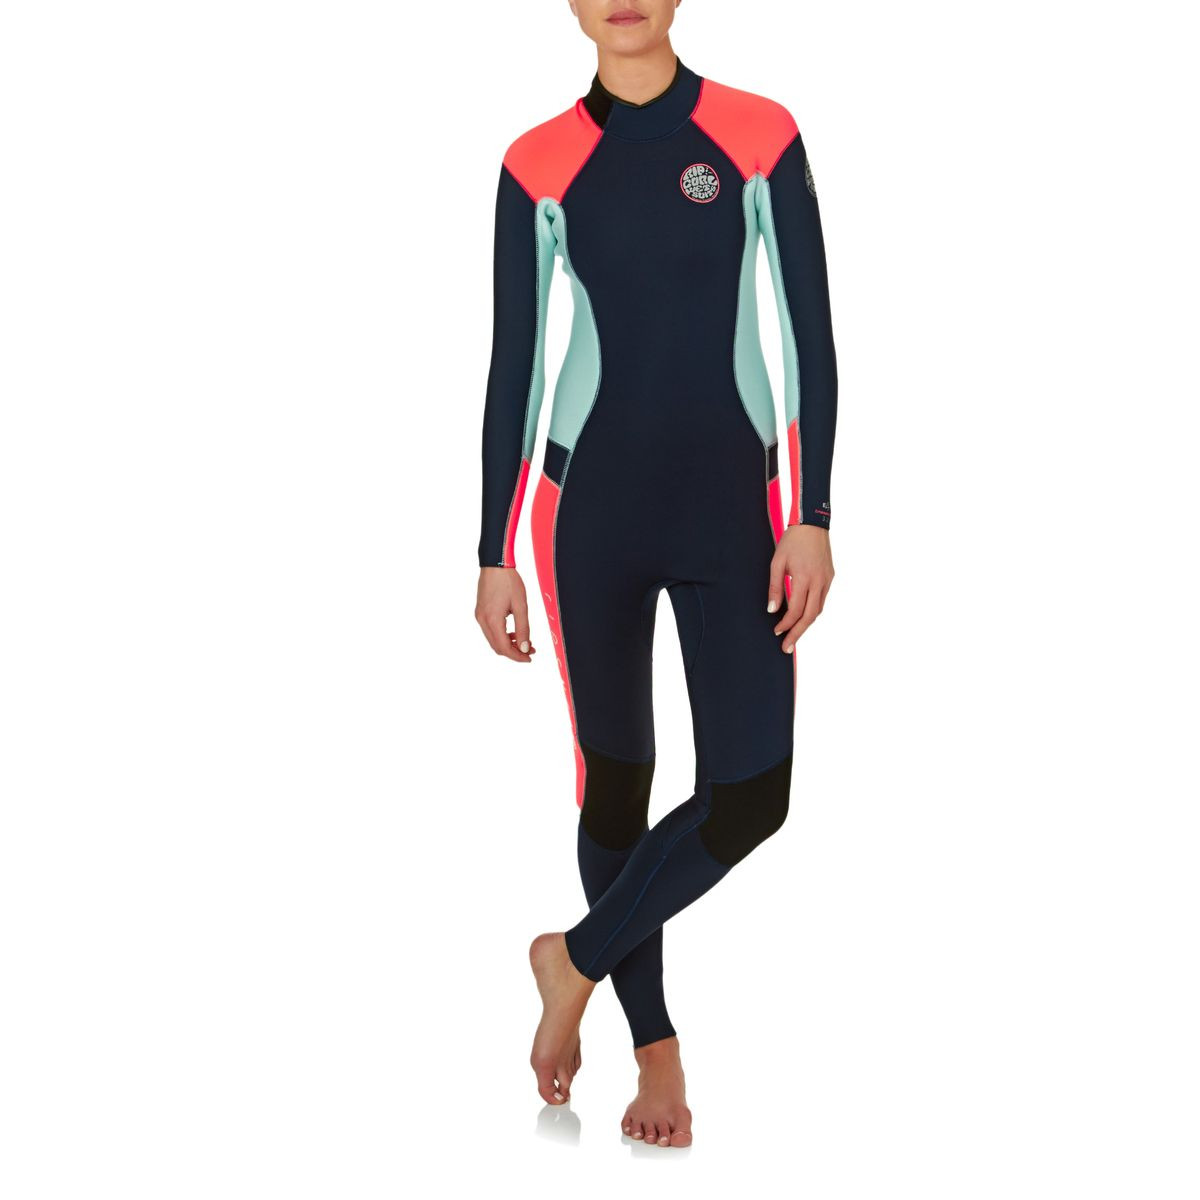 Rip Curl Womens Dawn Patrol 3/2mm Back Zip Wetsuit - Navy